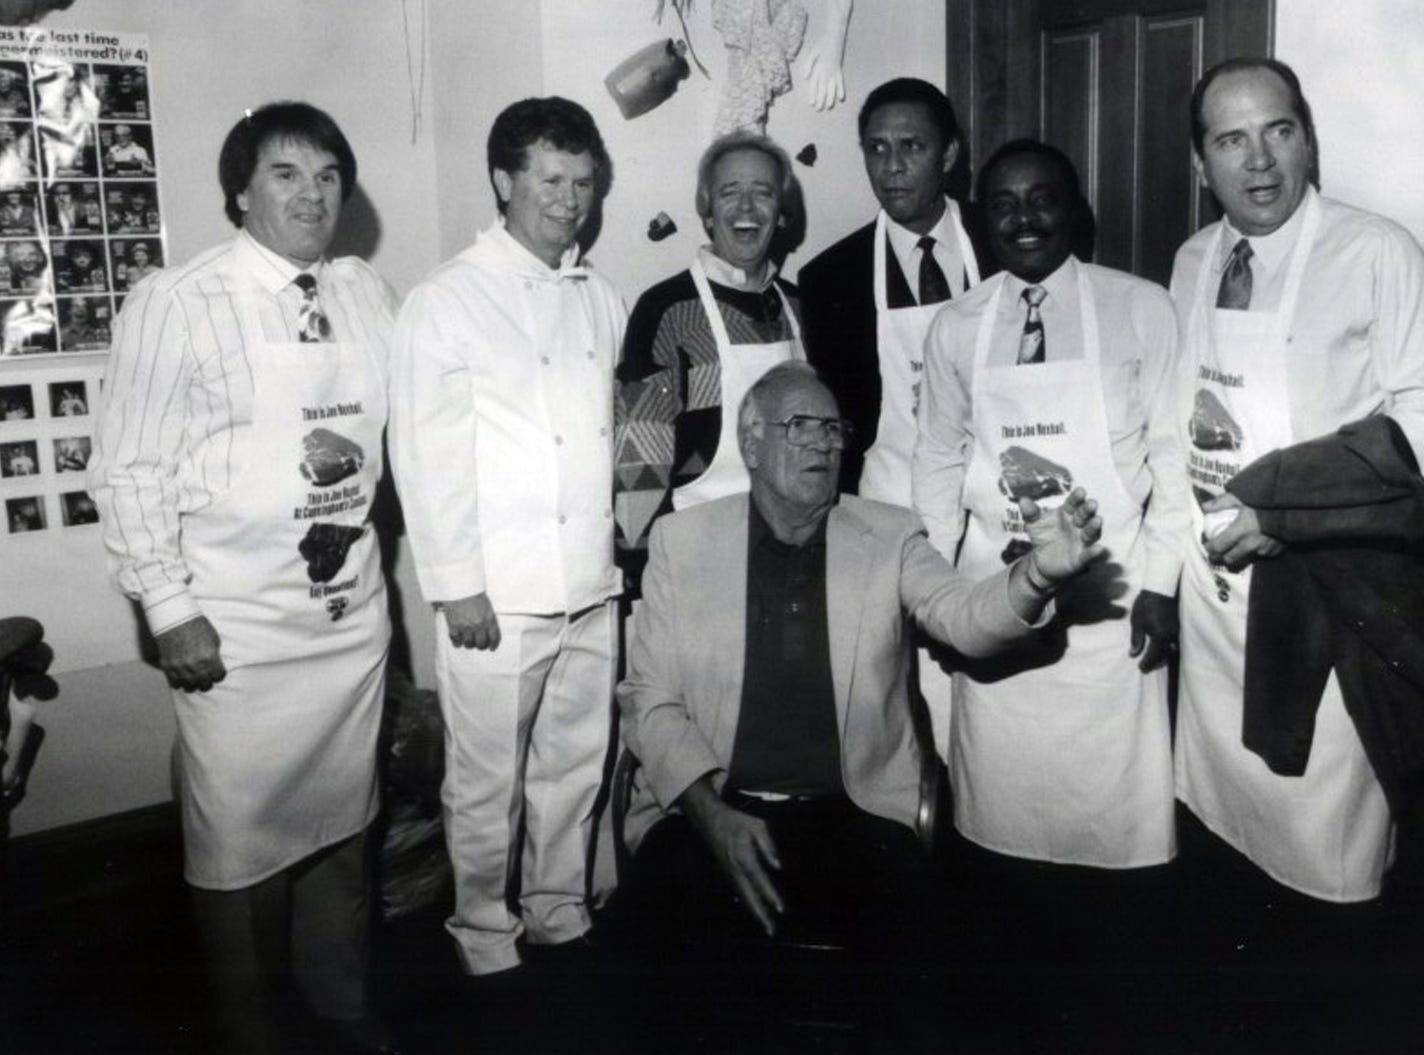 NOVEMBER 5, 1992: NUXHUALL: Cincinnati Reds announcer Joe Nuxhall, seated, was the honoree for a roast held for the benefit of the Cystic Fibrosis Foundation at Oldenberg Great Hall. Nuxhall is pictured with from left to right: Pete Rose, Bill Cunningham, Marty Brennaman, Tony Perez, Joe Morgan and Johnny Bench. PHOTO CREDIT: Philip Groshong for The Enquirer scanned February 8, 2008